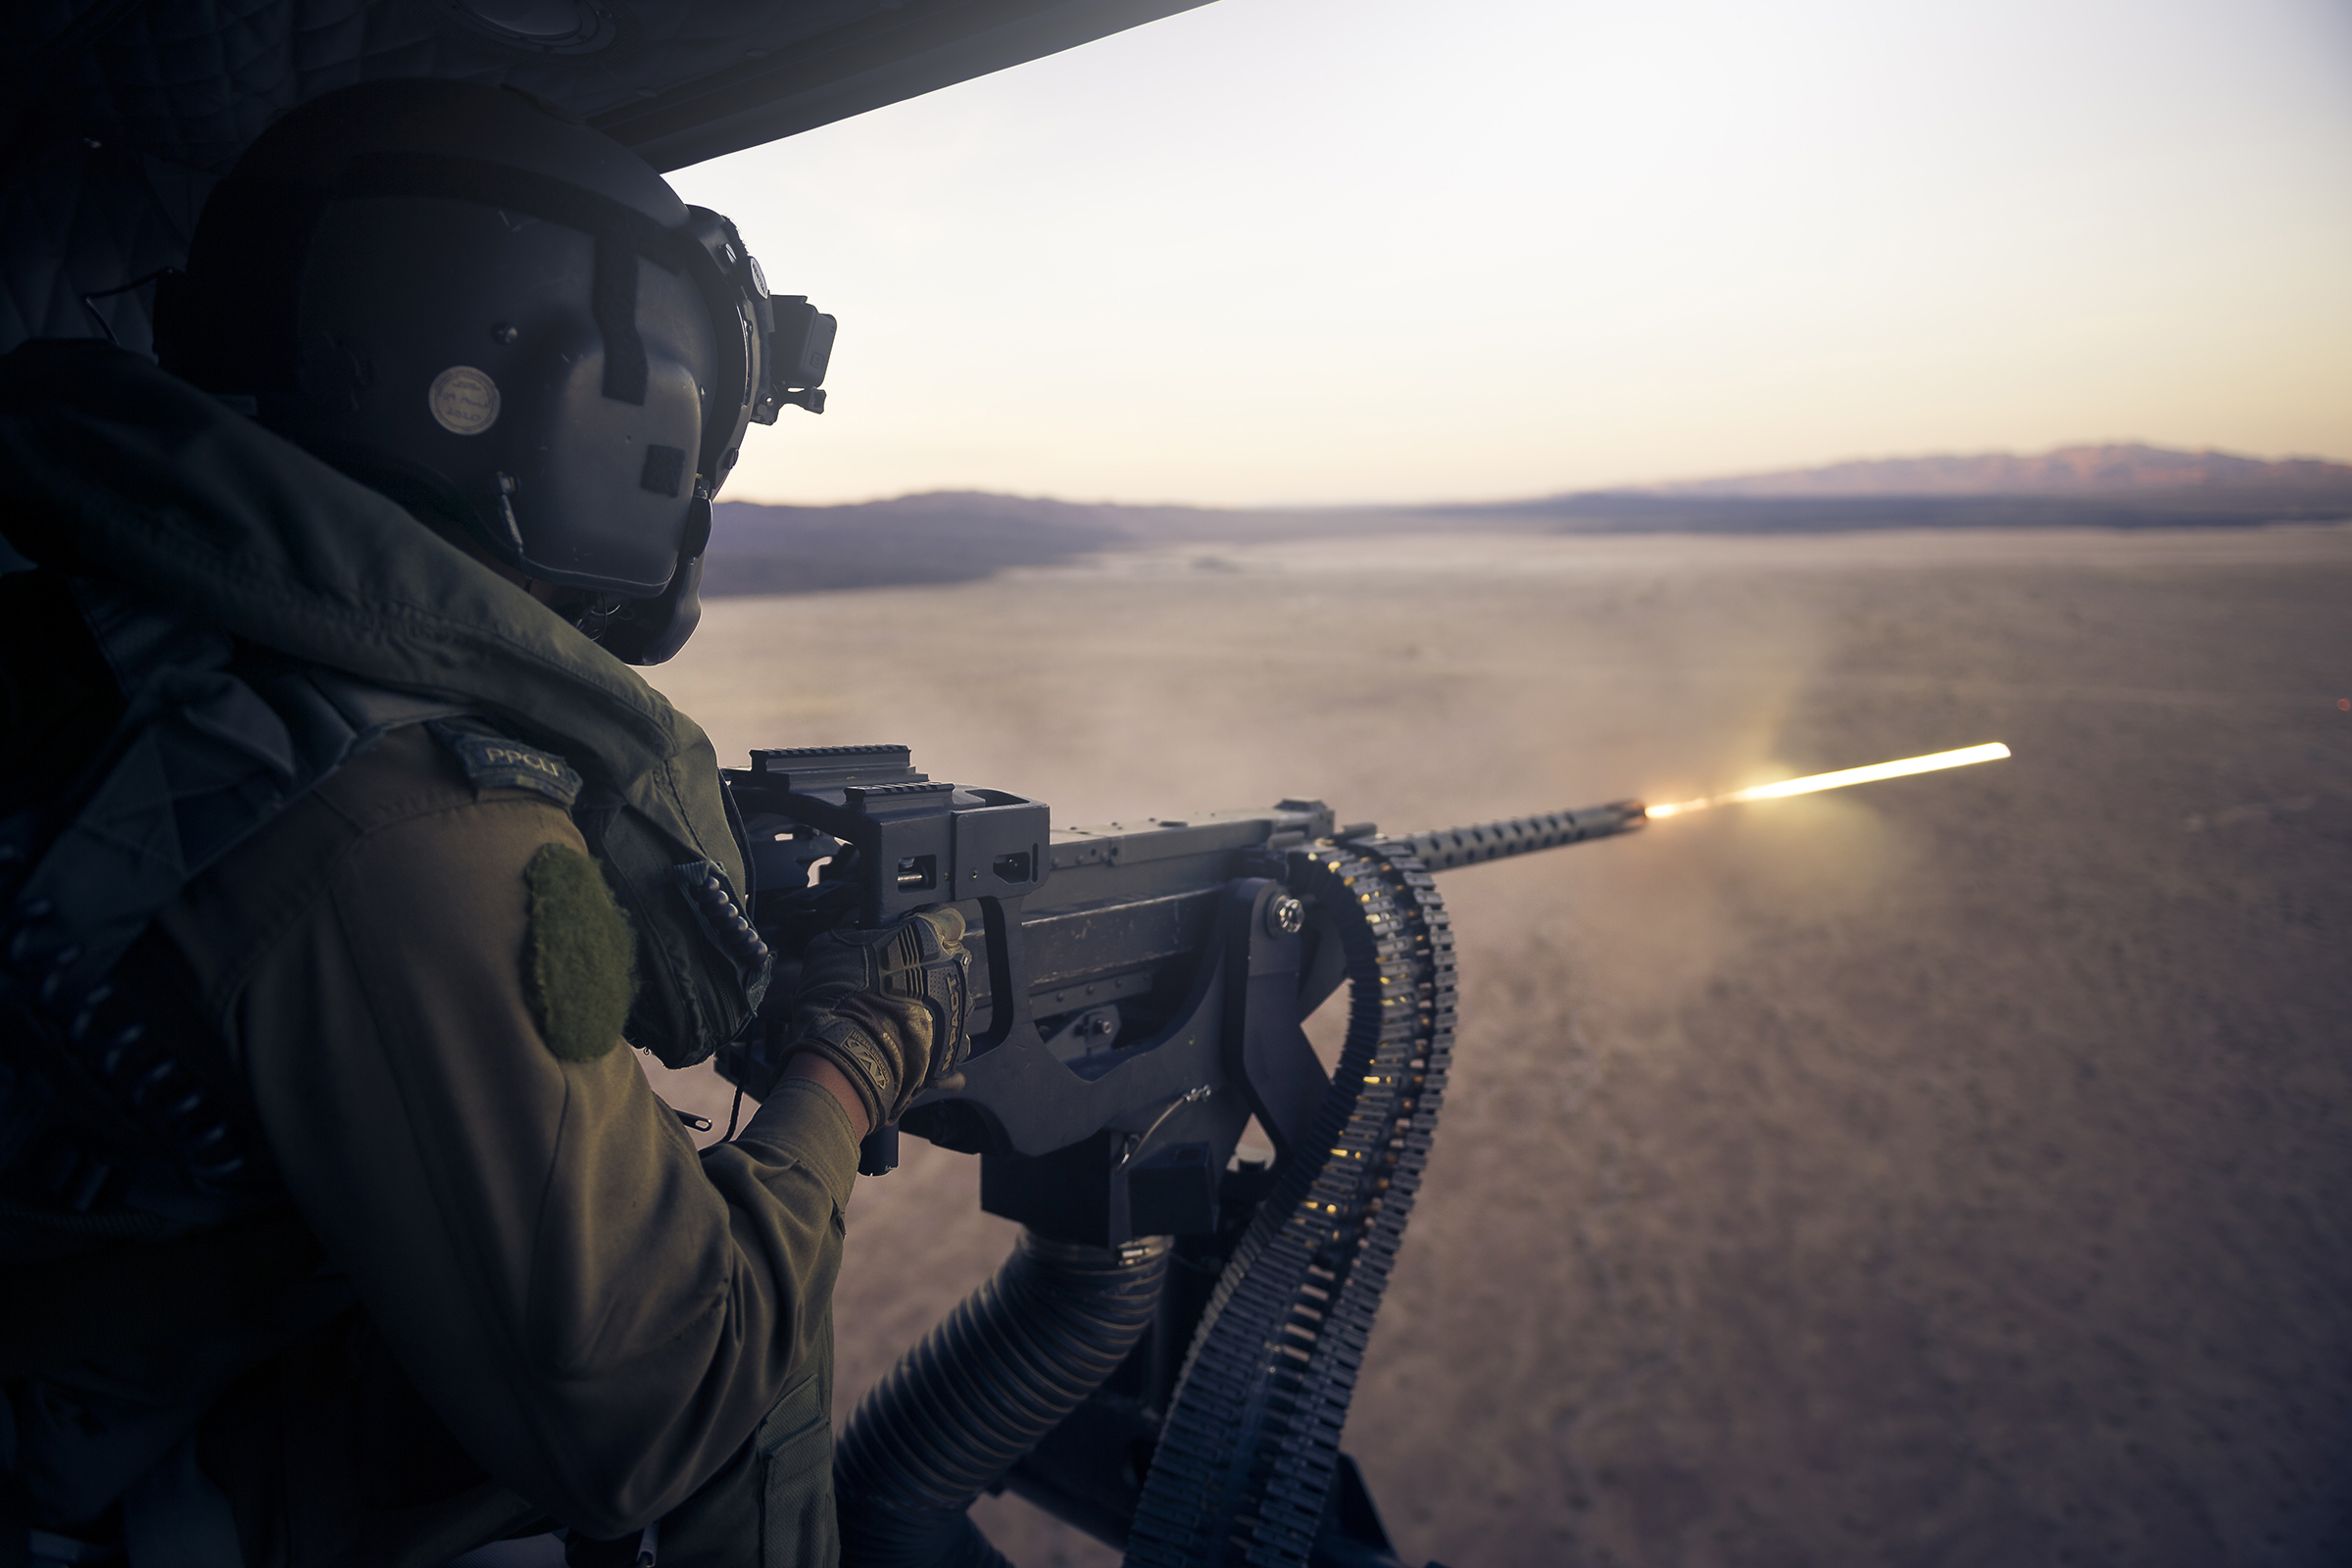 A 408 Squadron door gunner from Princess Patricia's Canadian Light Infantry fires a GAU-21 .50 caliber machine gun from the door of an RCAF CH-146 Griffon helicopter on November 11, 2019, during an exercise at Marine Corps Air Ground Combat Center Twentynine Palms, California. PHOTO: Corporal Desiree T. Bourdon, FA01-2019-0040-031